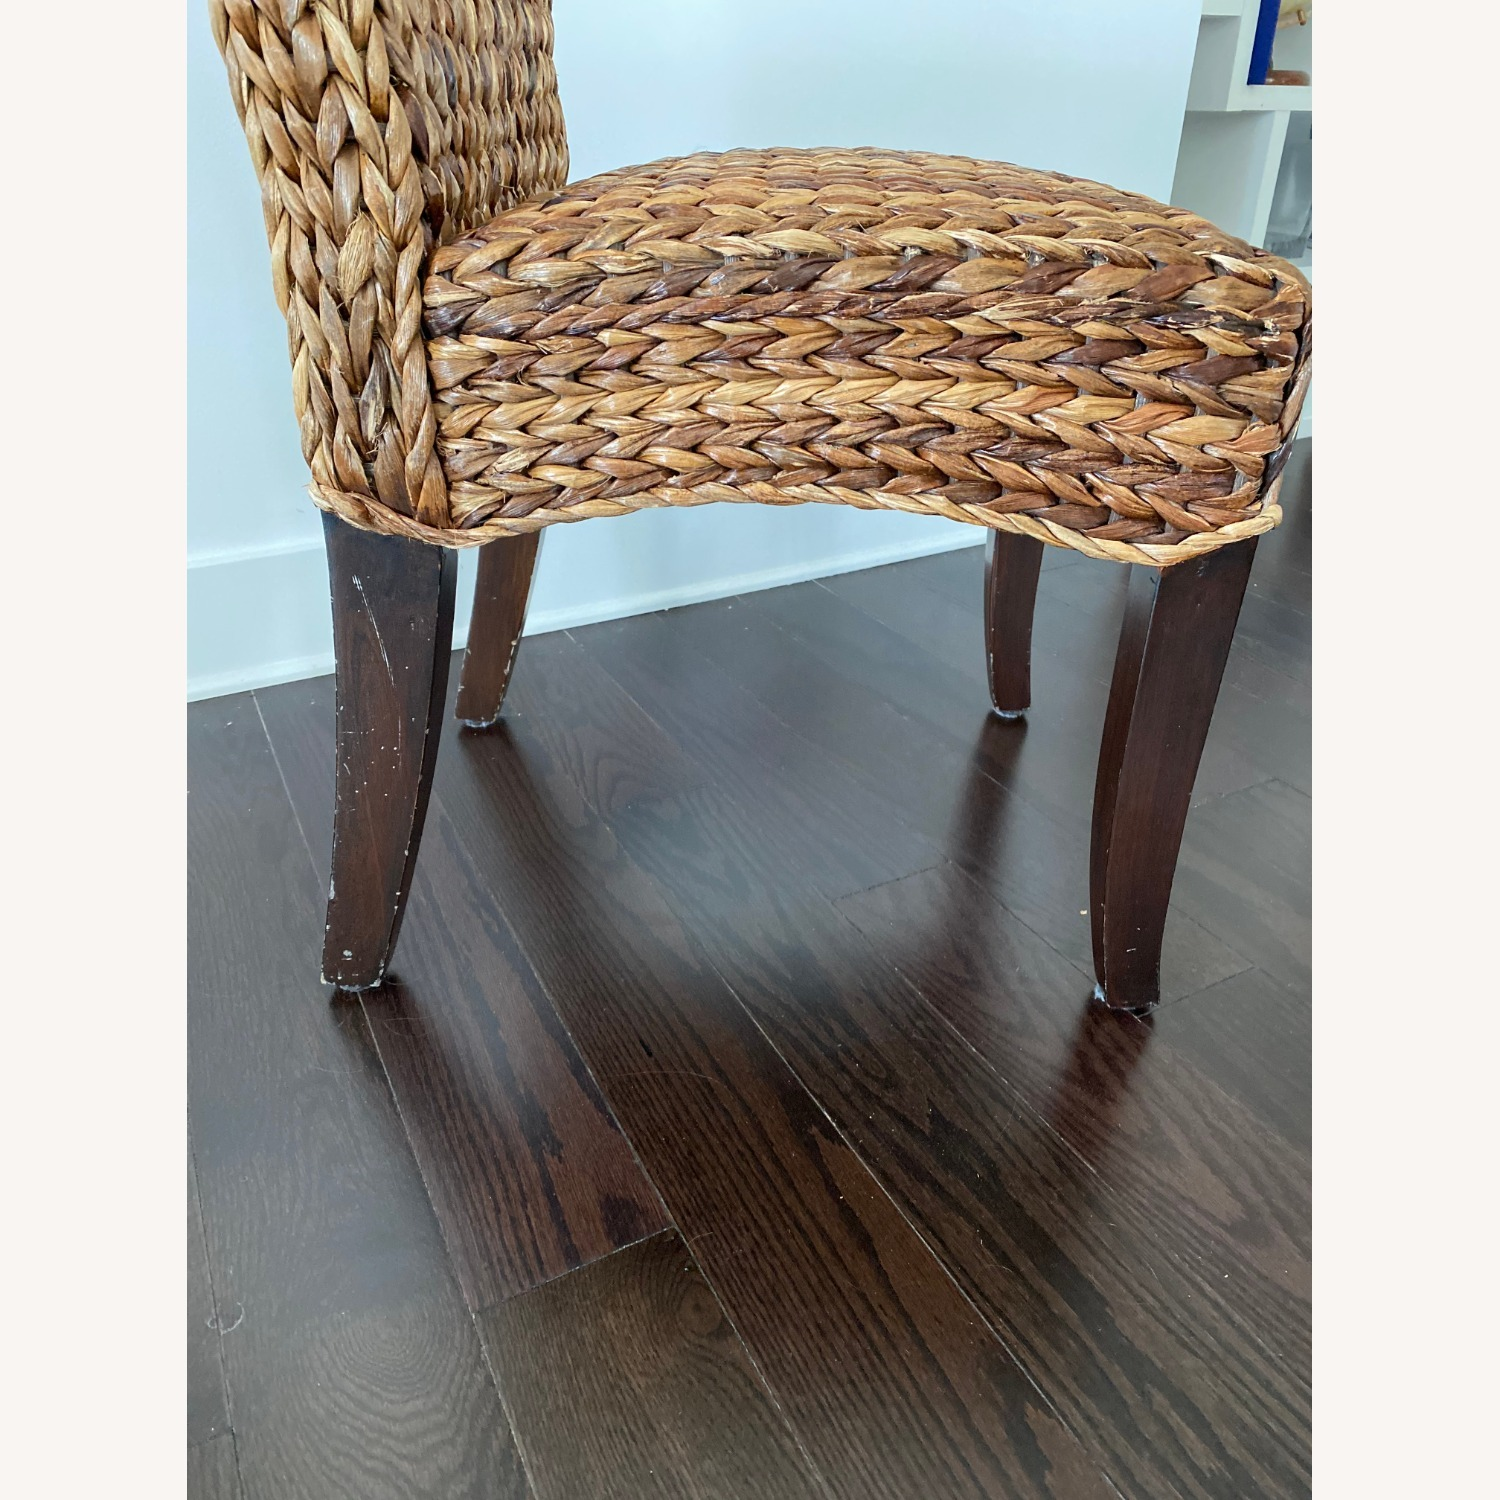 Pottery Barn Dining Table and Seagrass Chair Set - image-4